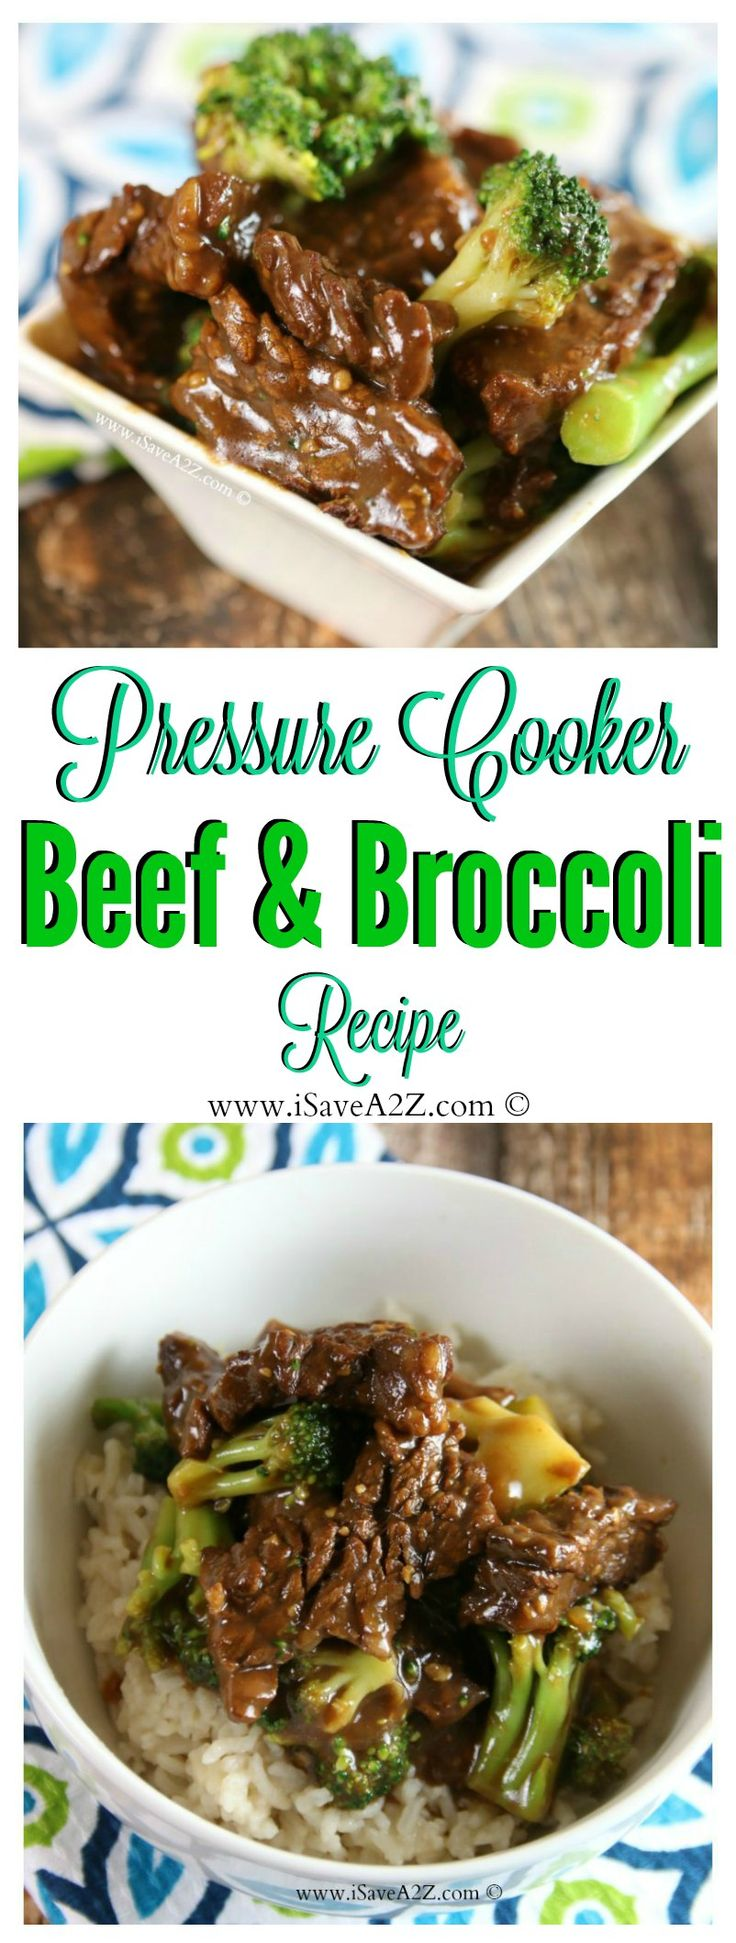 Easy Pressure Cooker Beef and Broccoli Recipe that is a CINCH to make!!!!  I can see why this recipe is so popular!